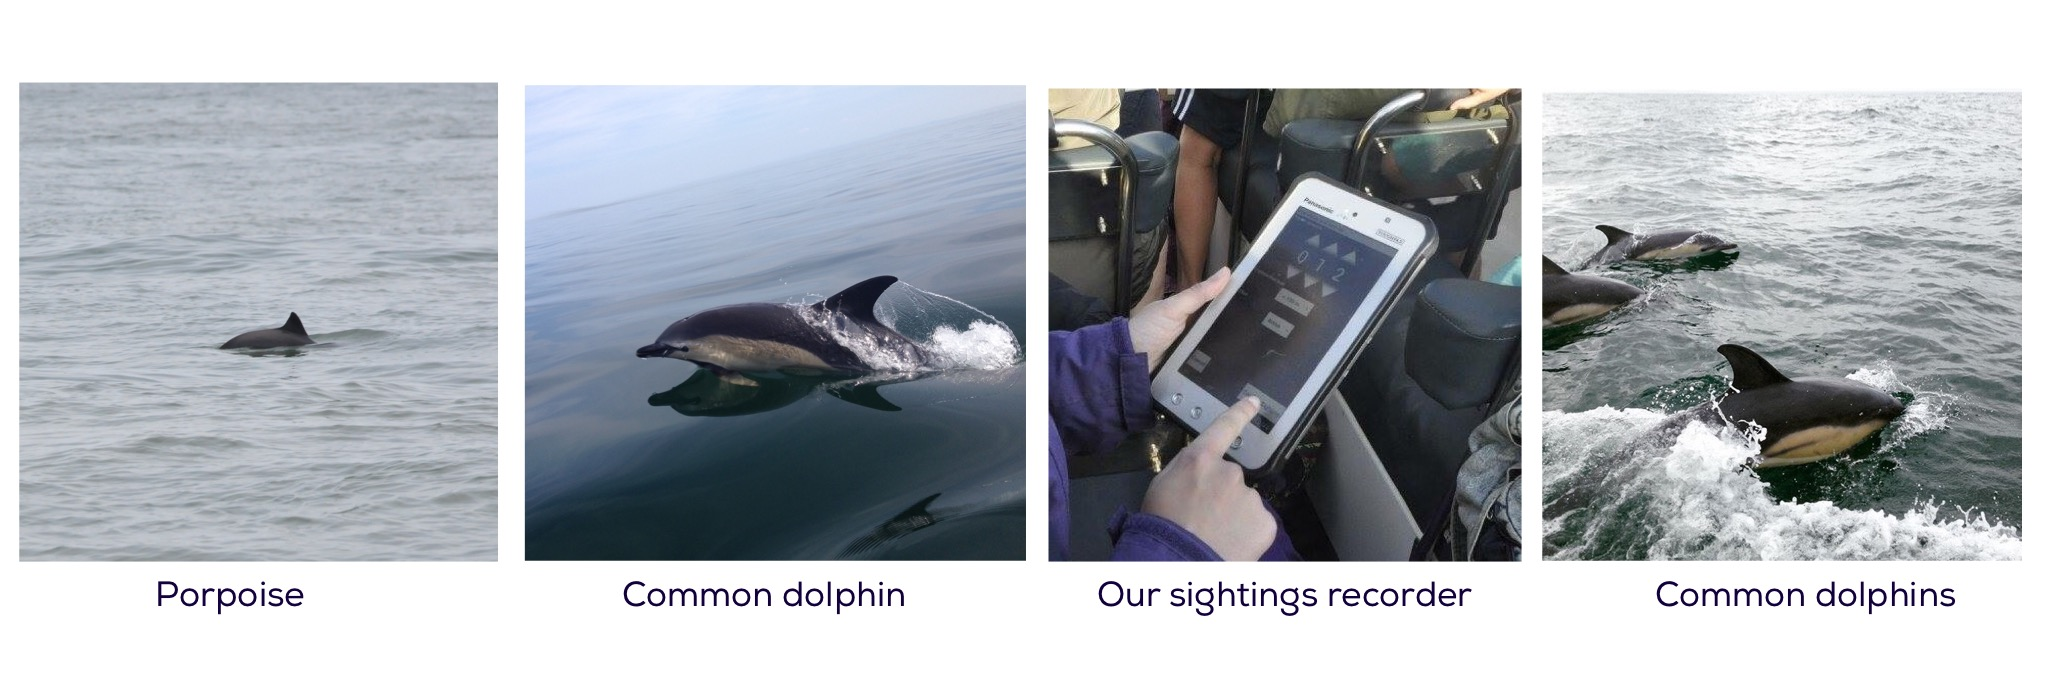 Recording porpoise and dolphin sightings on Gower from our boat